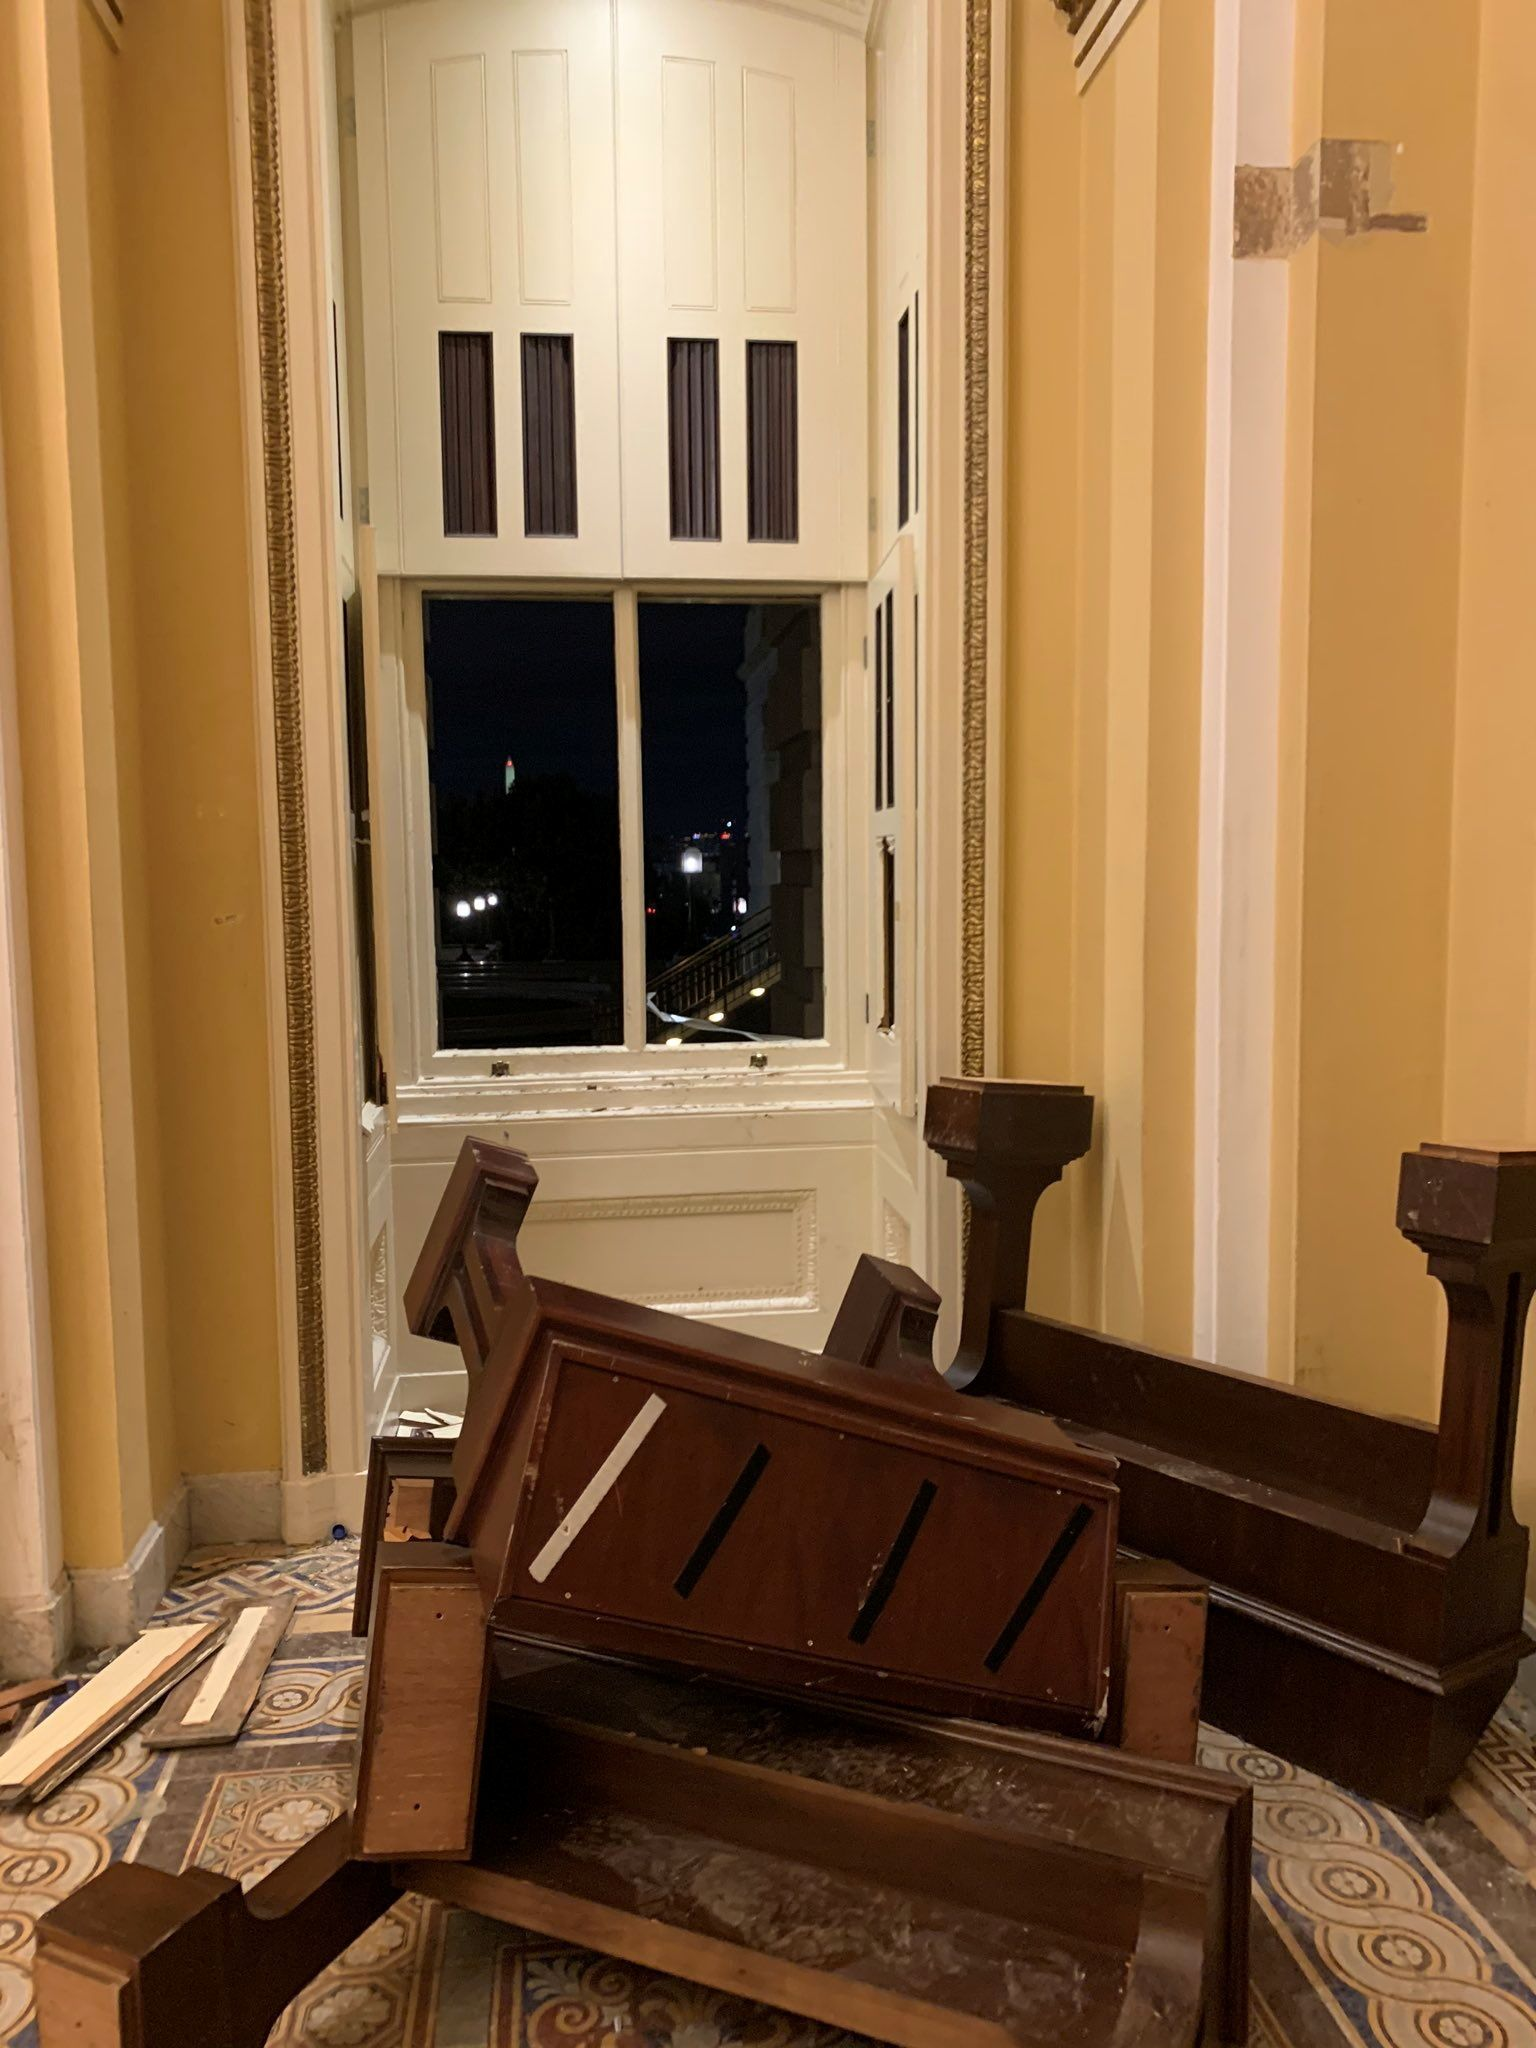 Flipped furniture and a broken window glass lie on the floor inside the U.S. Capitol in Washington